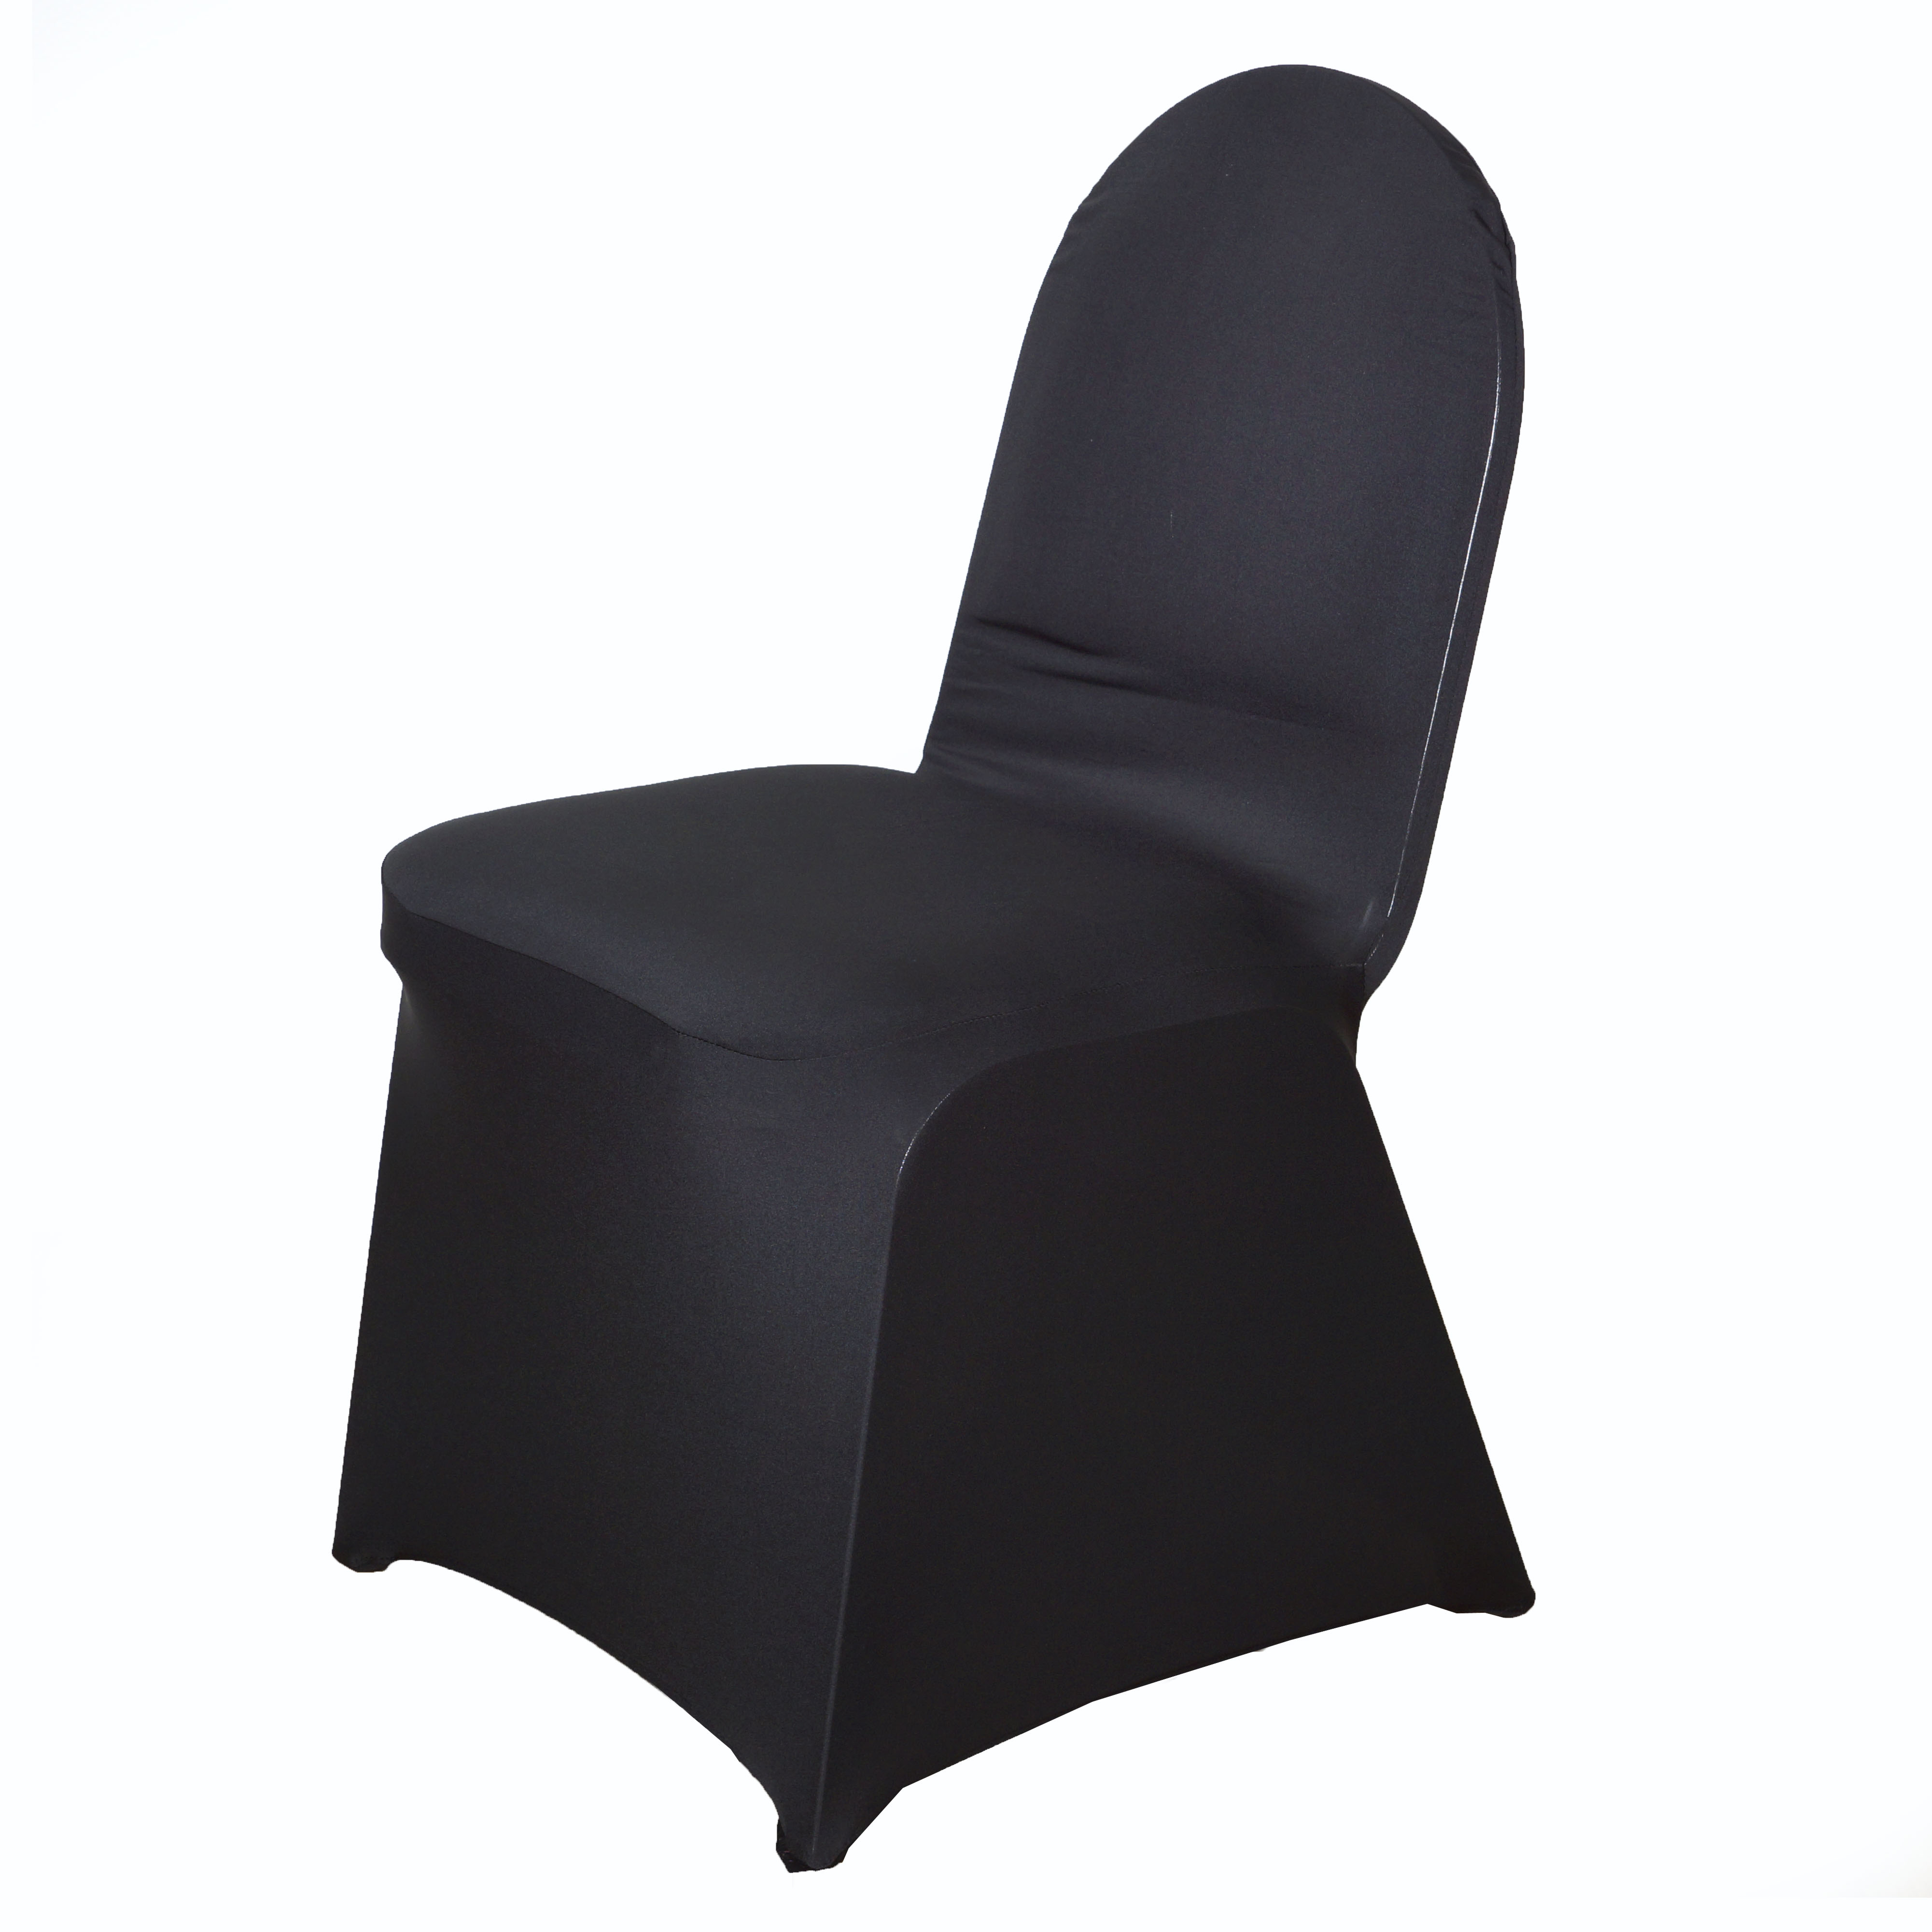 universal chair covers for rent ity apple stand caper 200 pcs spandex stretchable wholesale wedding